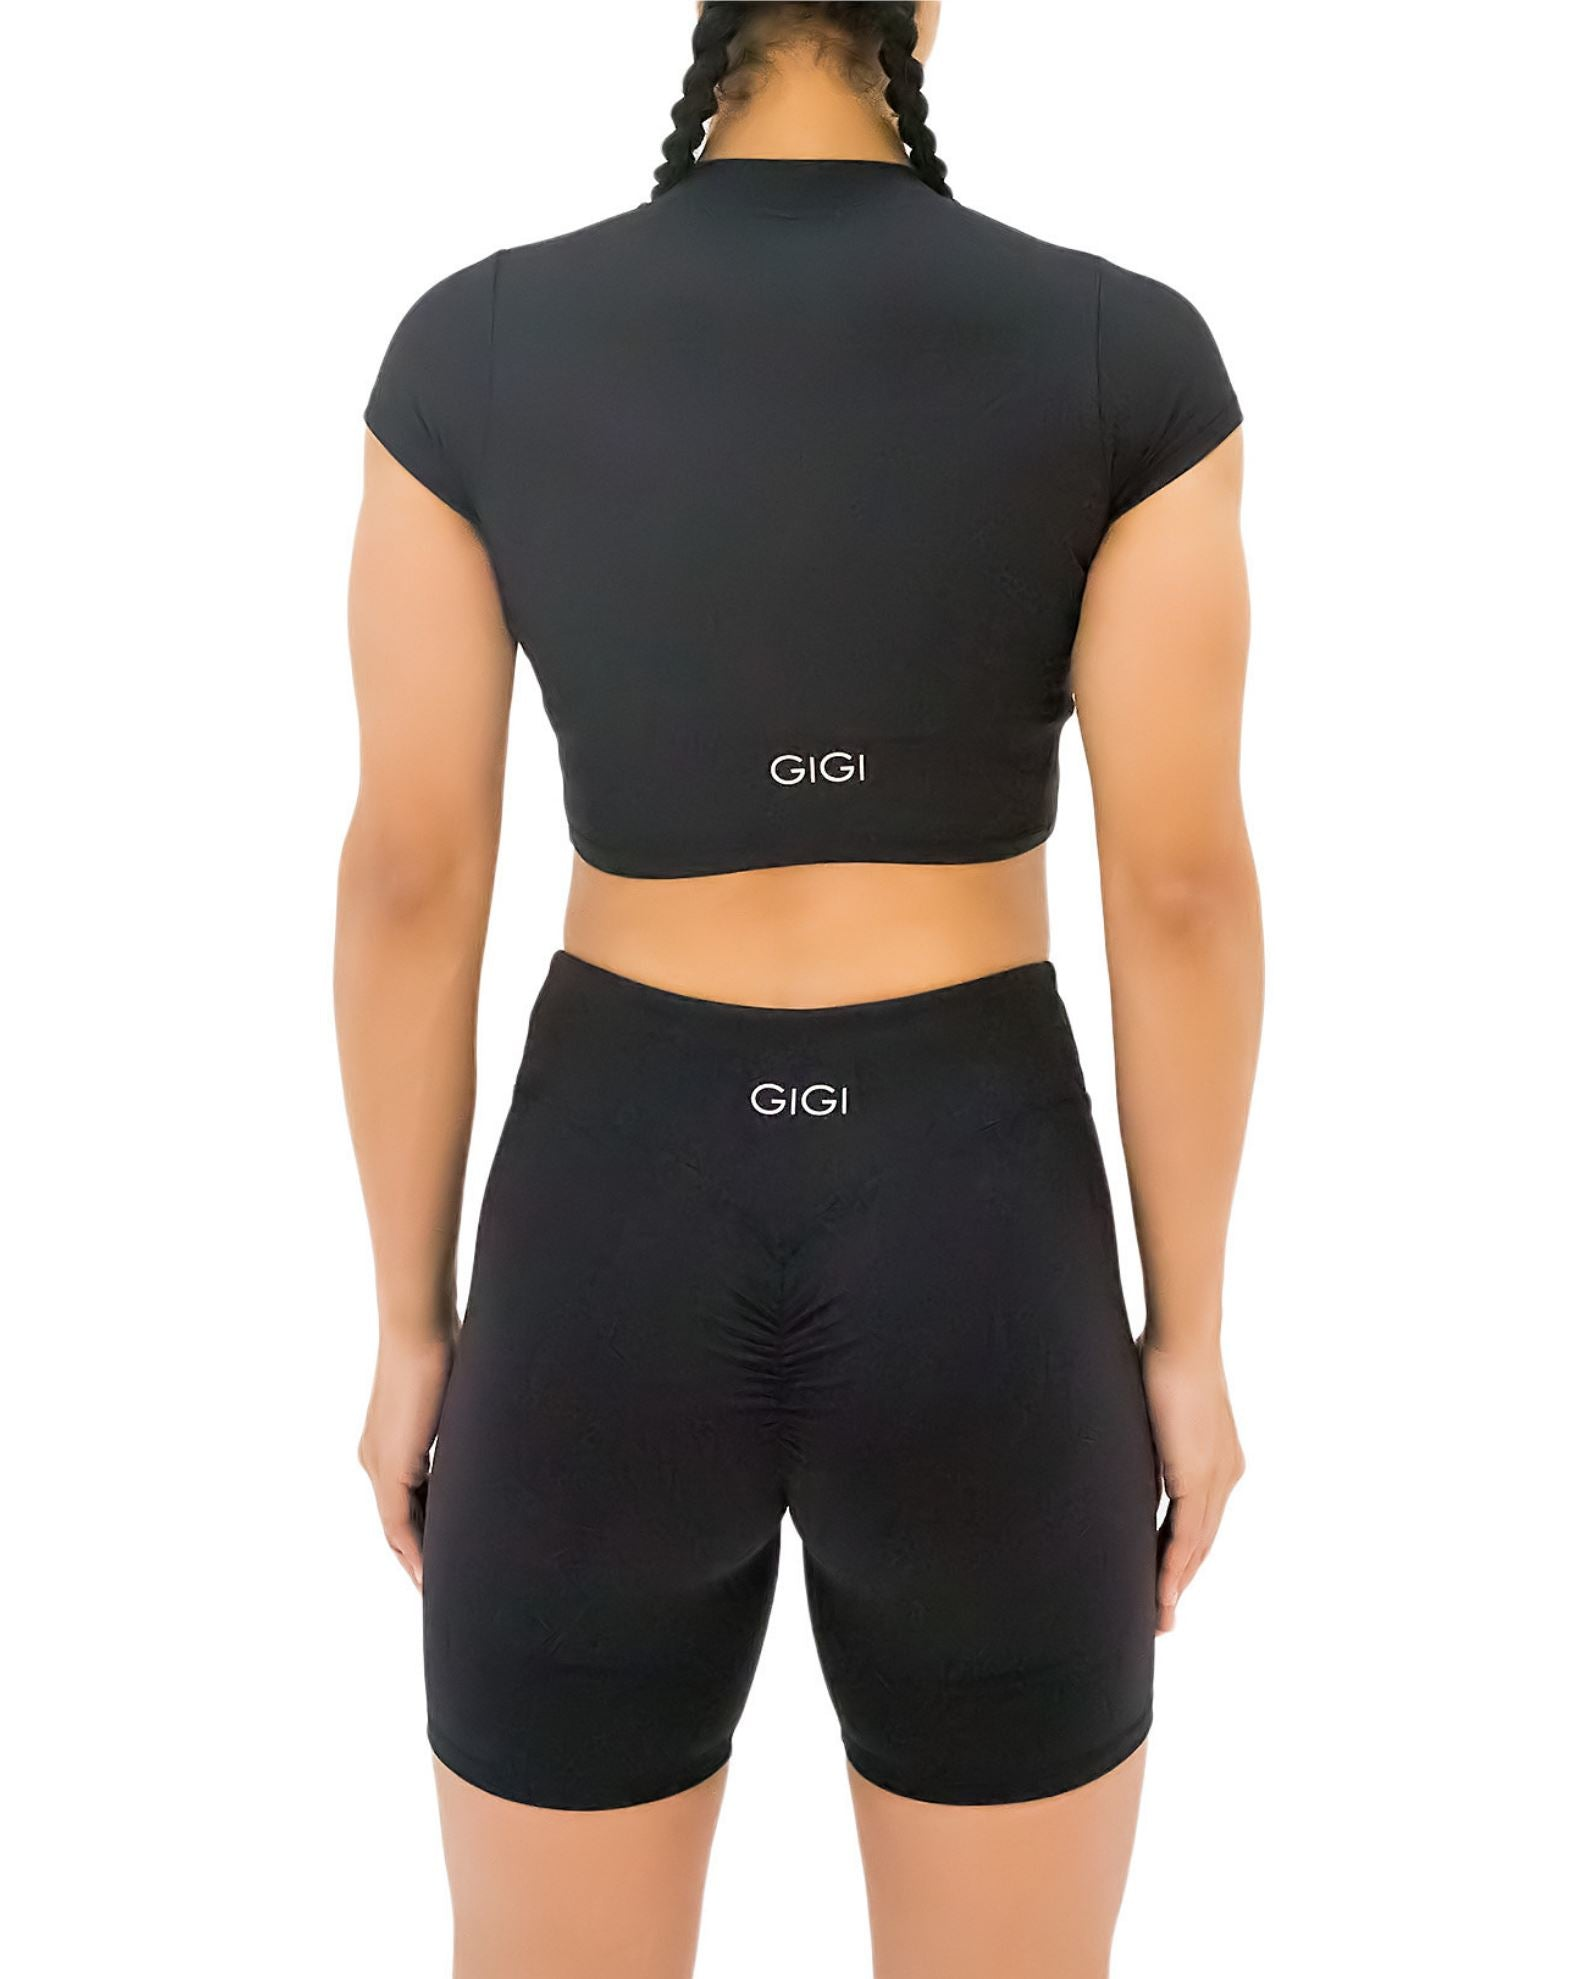 GIGI Lina Bike Shorts - Black